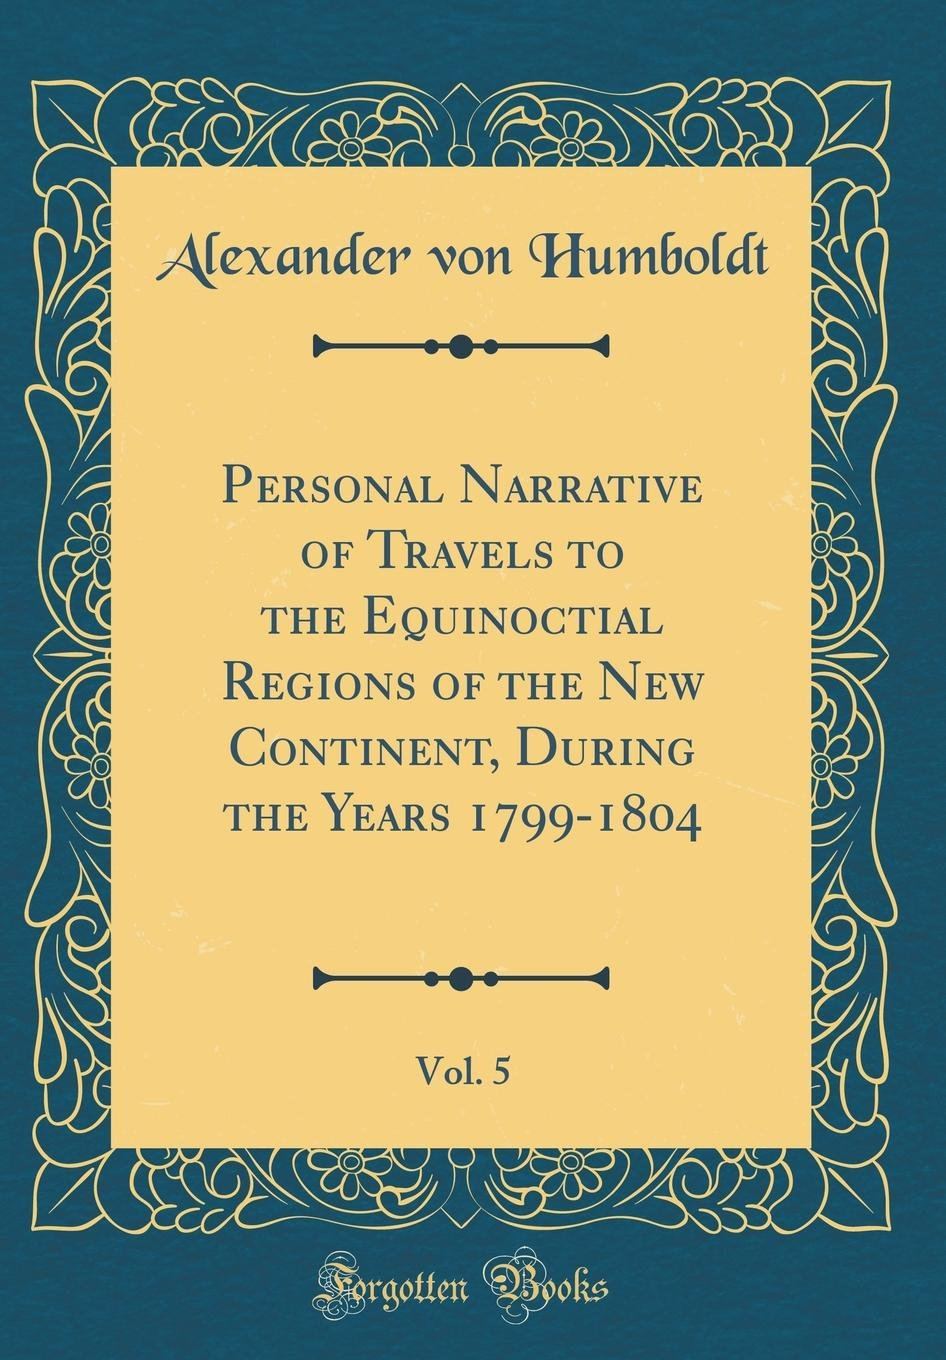 Personal Narrative of Travels to the Equinoctial Regions of the New Continent, During the Years 1799-1804, Vol. 5 (Classic Reprint) pdf